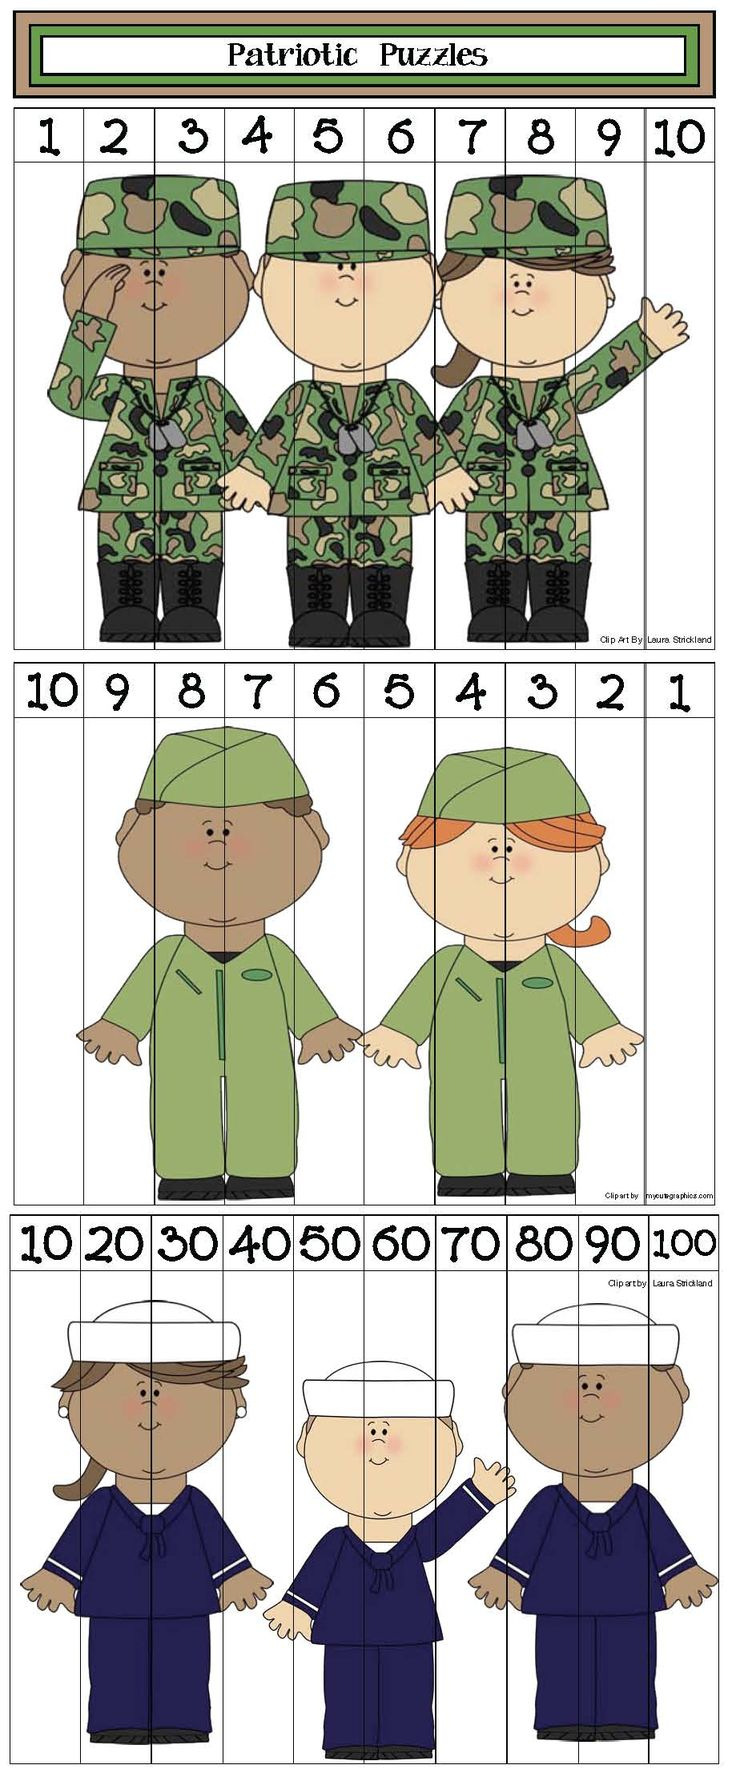 vetrans day activities, veterans day crafts, common core veterans day, camouflage alphabet cards, veterans day number cards, writing prompts for veterans day, memorial day crafts, memorial day activities, veterans day arts and crafts,